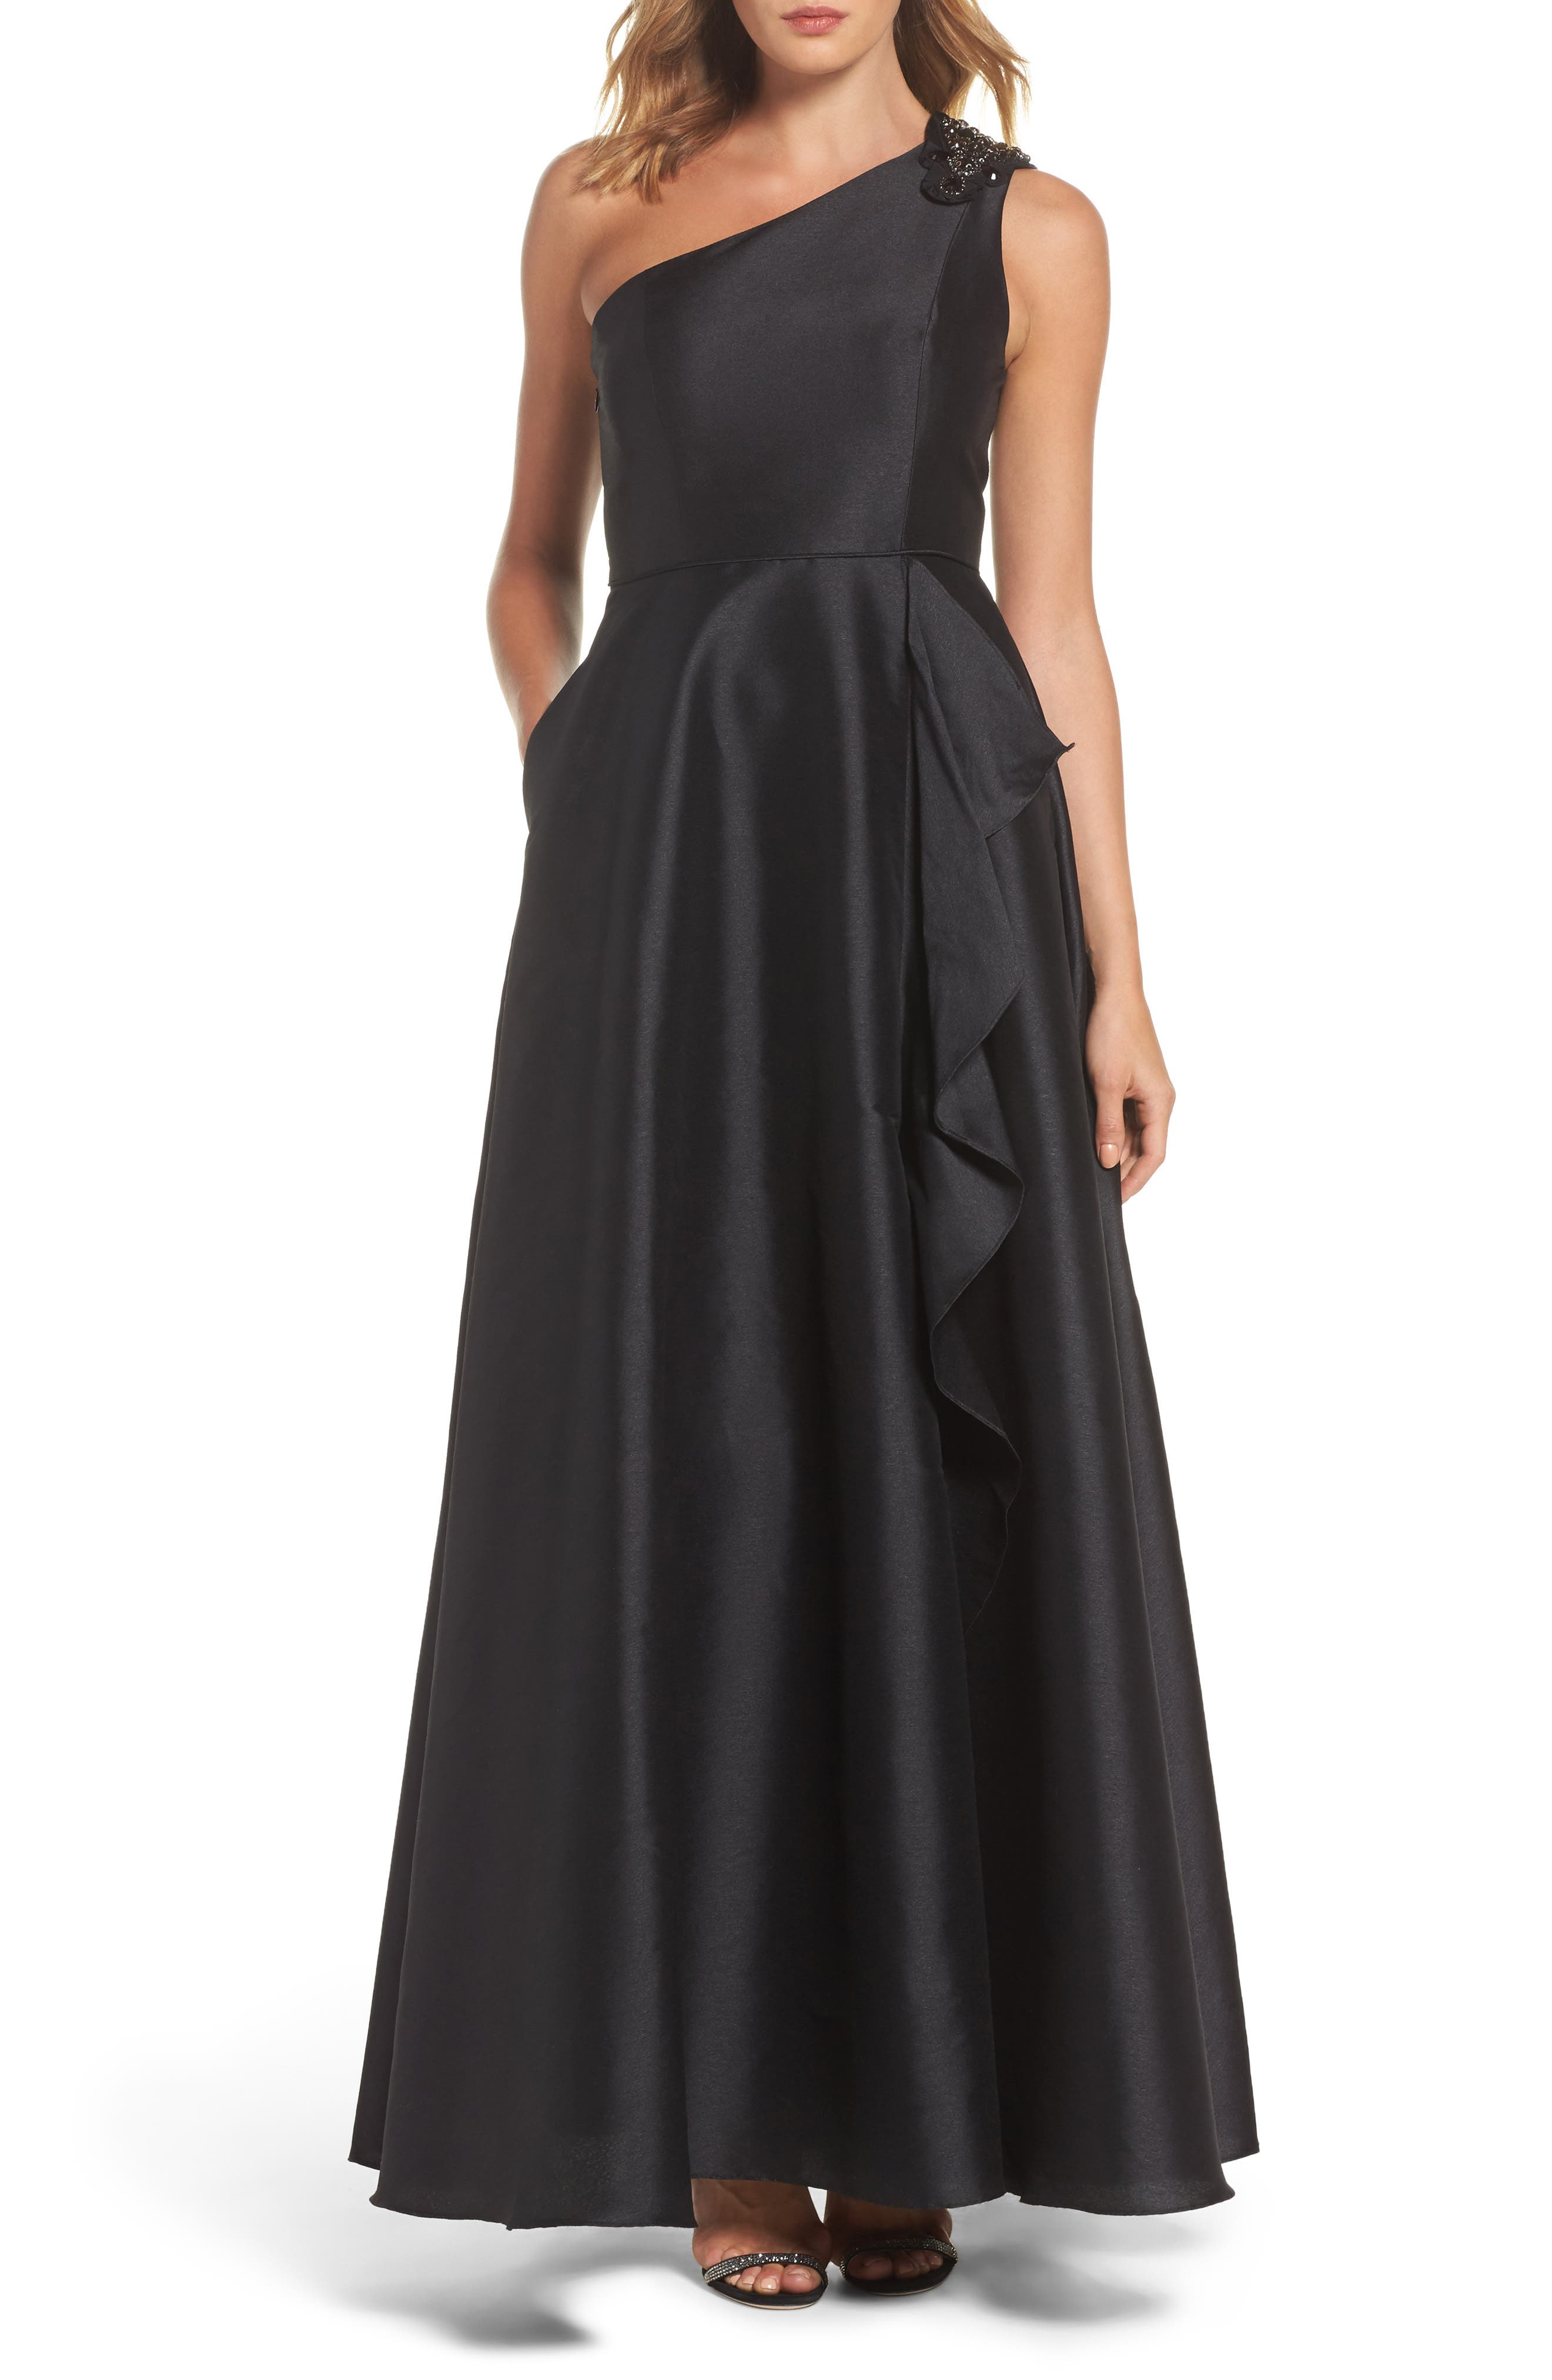 Main Image - Adrianna Papell Embellished One-Shoulder Drape Faille Gown